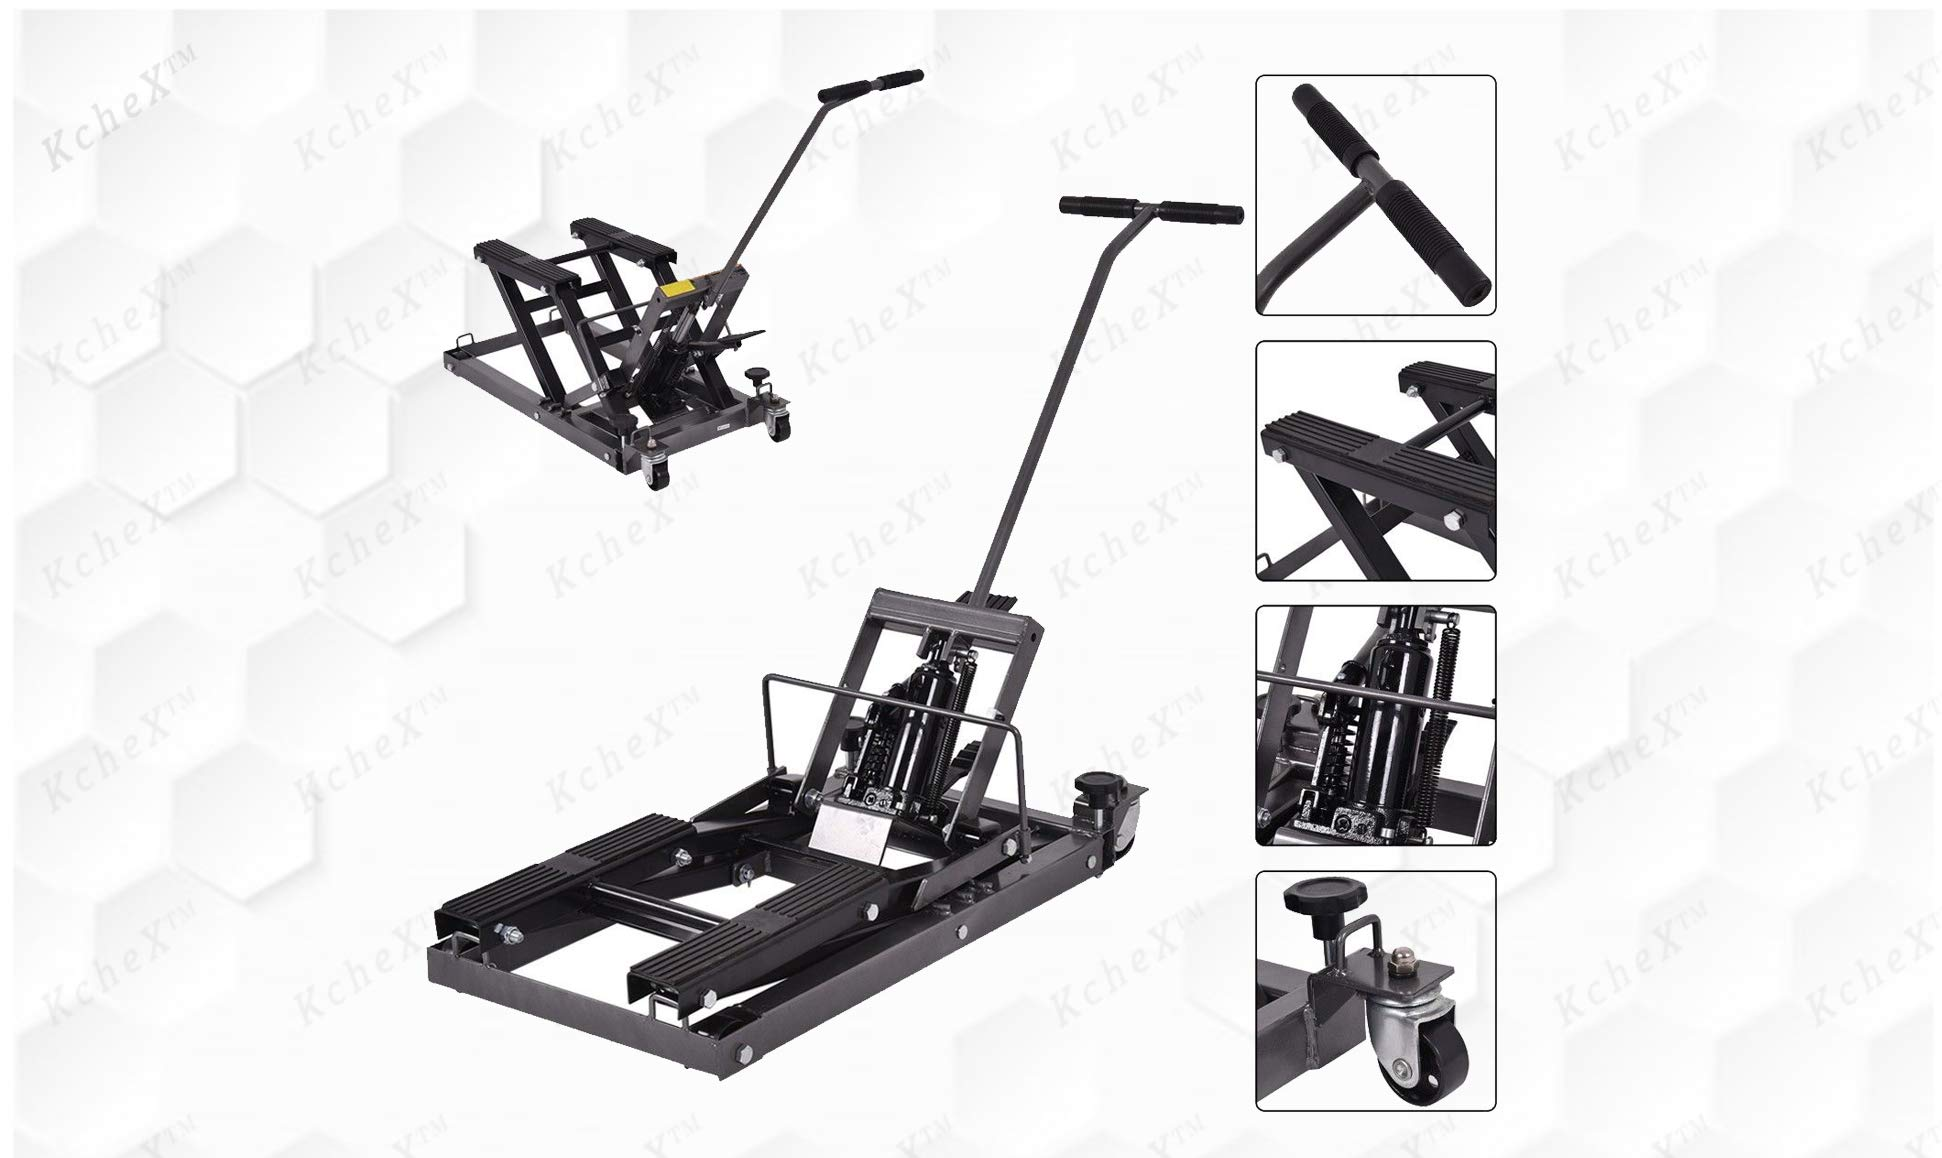 KCHEX_Motorcycle Jack Lift Stand